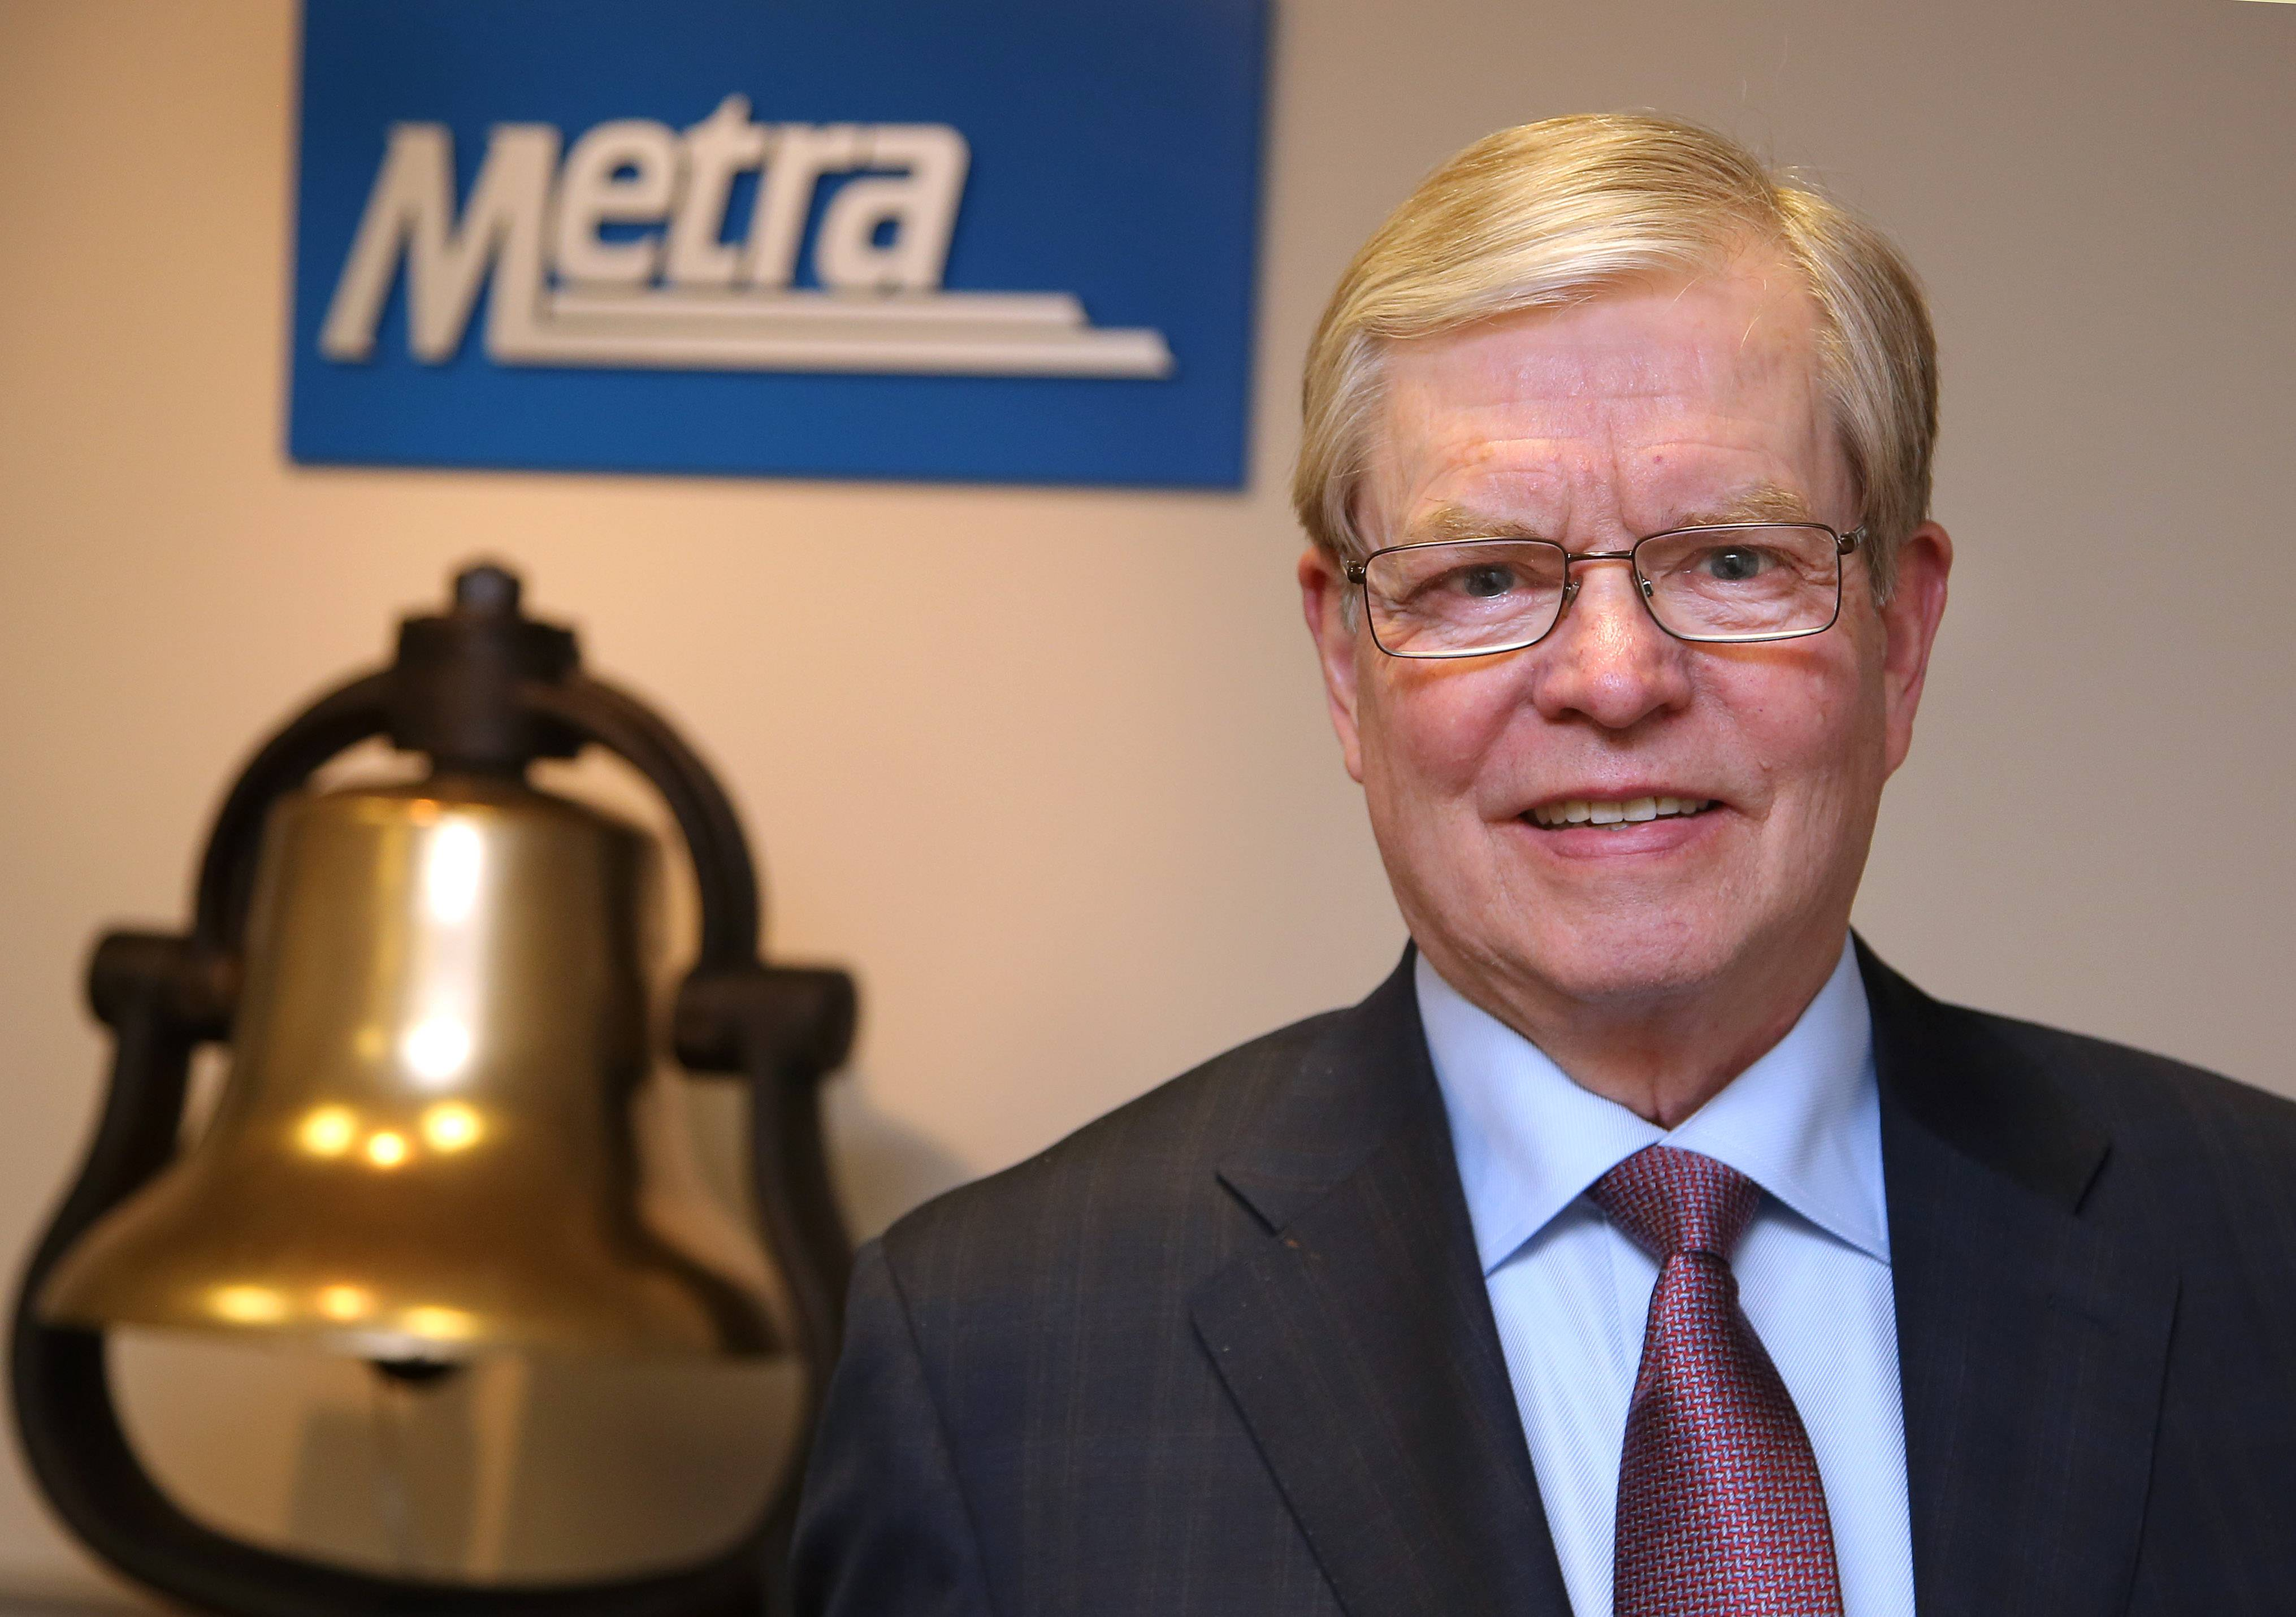 What track will new Metra chairman take?